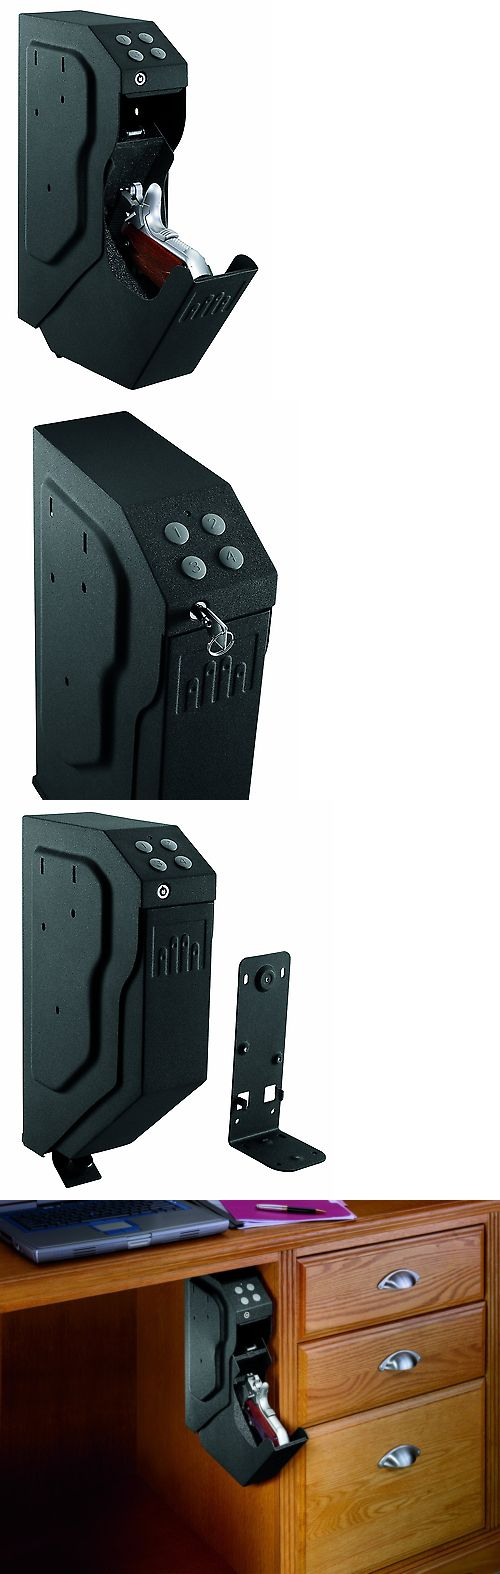 Cabinets and Safes 177877: New Handgun Safe Pistol Storage Safety Gun Vault Holder Case Firearms Security -> BUY IT NOW ONLY: $132.58 on eBay!